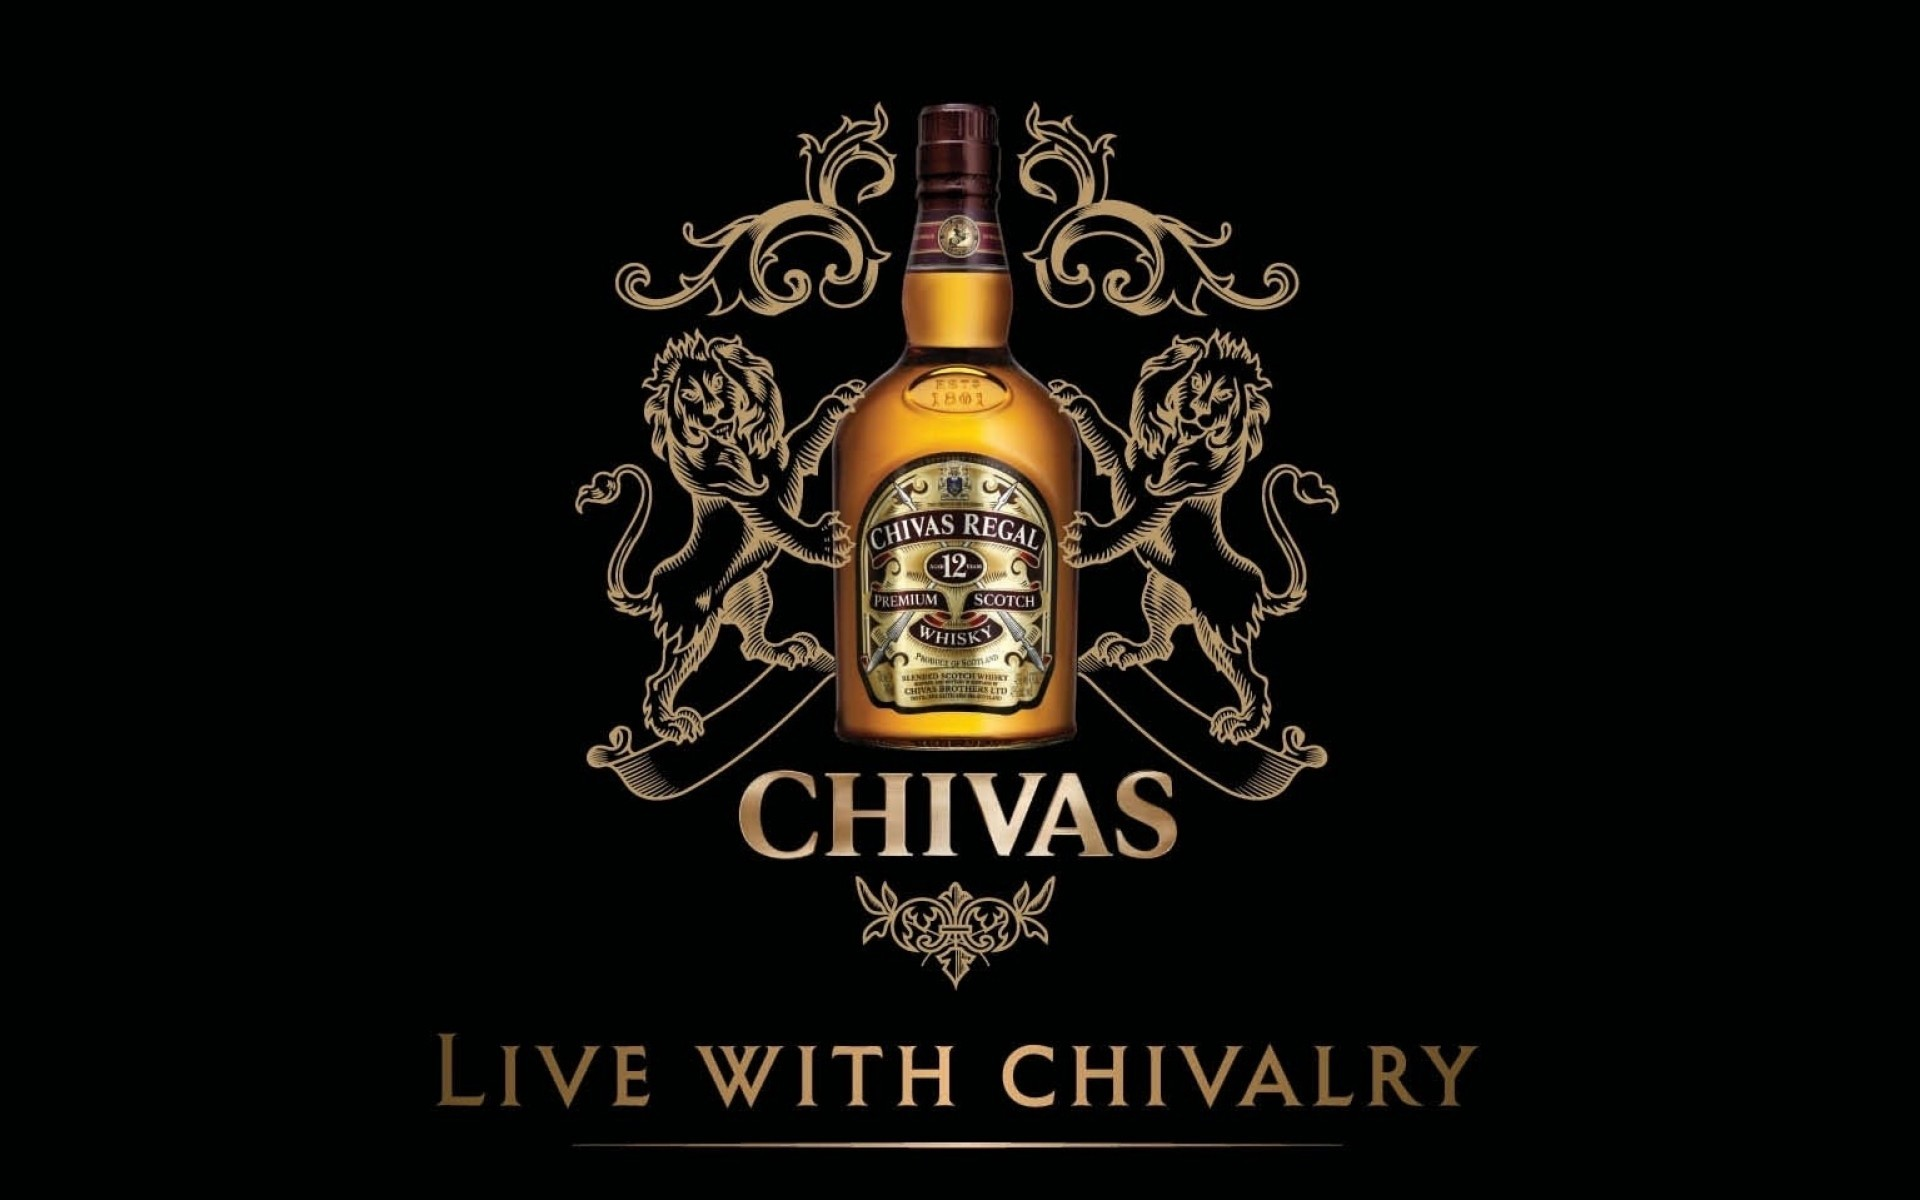 1920x1200 HD Wallpapers Chivas Regal Whisky Amazing Cool / Wallpaper Food 77246 .